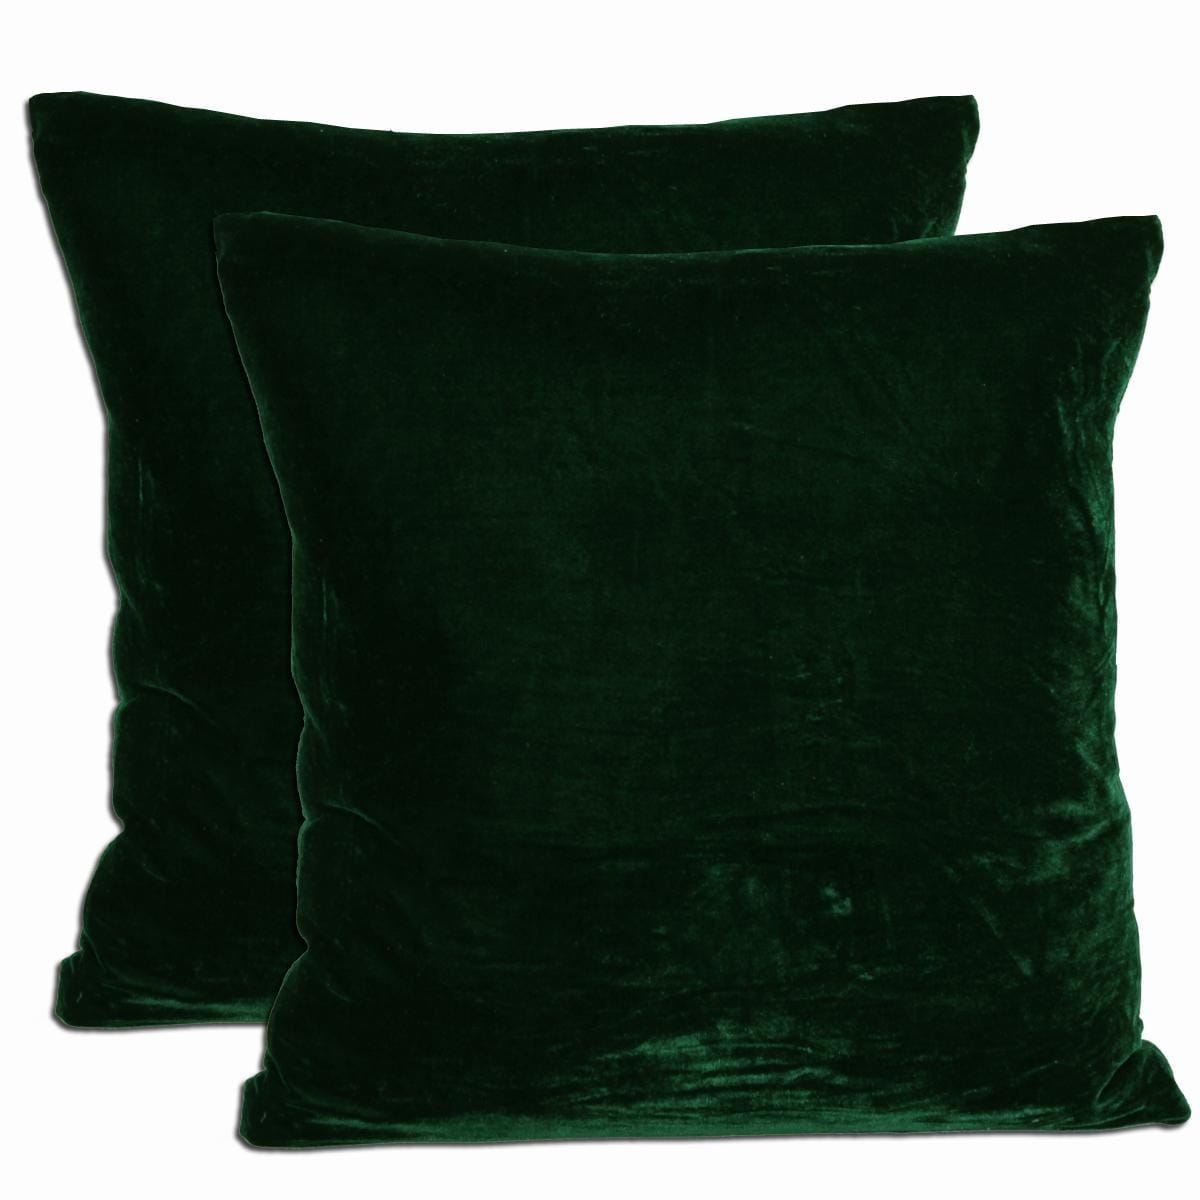 Green Velvet Feather and Down Filled Throw Pillows Set of  : Green Velvet Feather and Down Filled Throw Pillows Set of 2 L13396315 from www.overstock.com size 1200 x 1200 jpeg 51kB